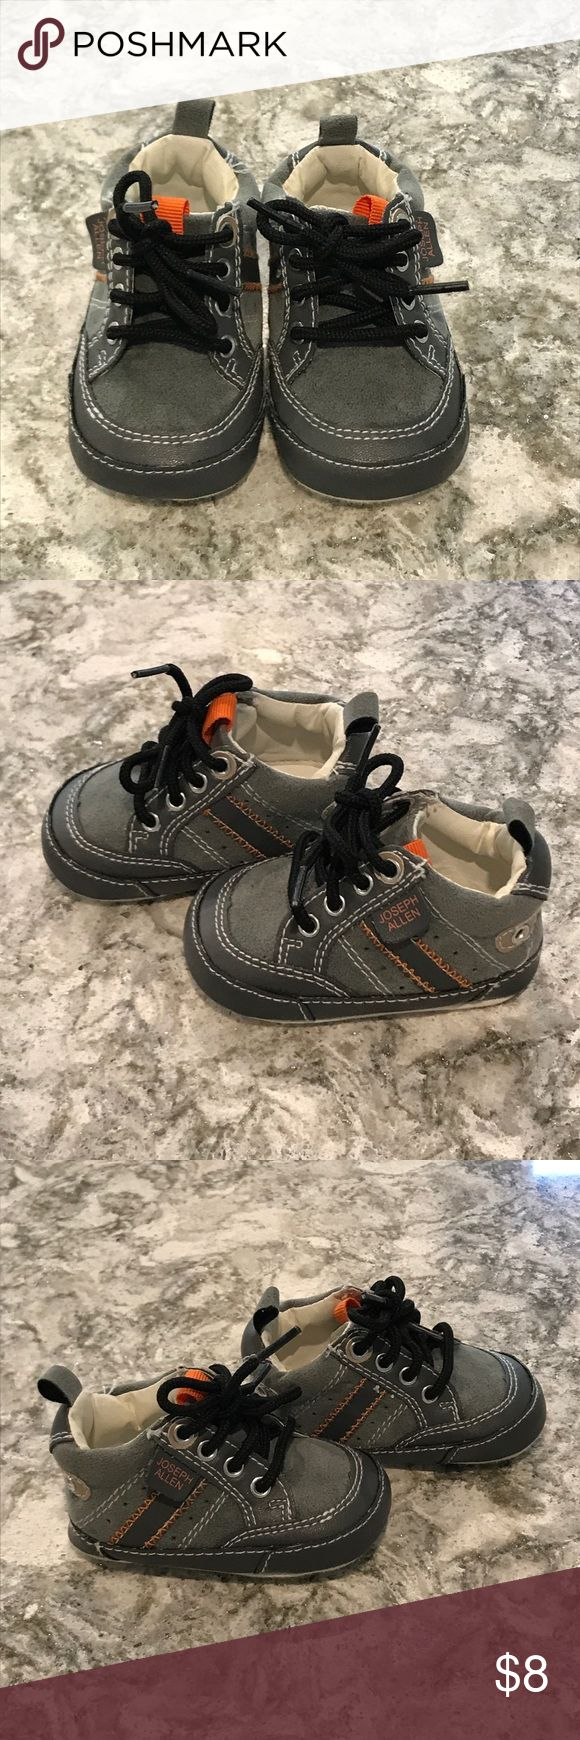 Baby boy shoes Gray and orange baby boy high top shoes.  Size newborn.  Shoe lace closure, worn a few times Joseph Allen Shoes Baby & Walker